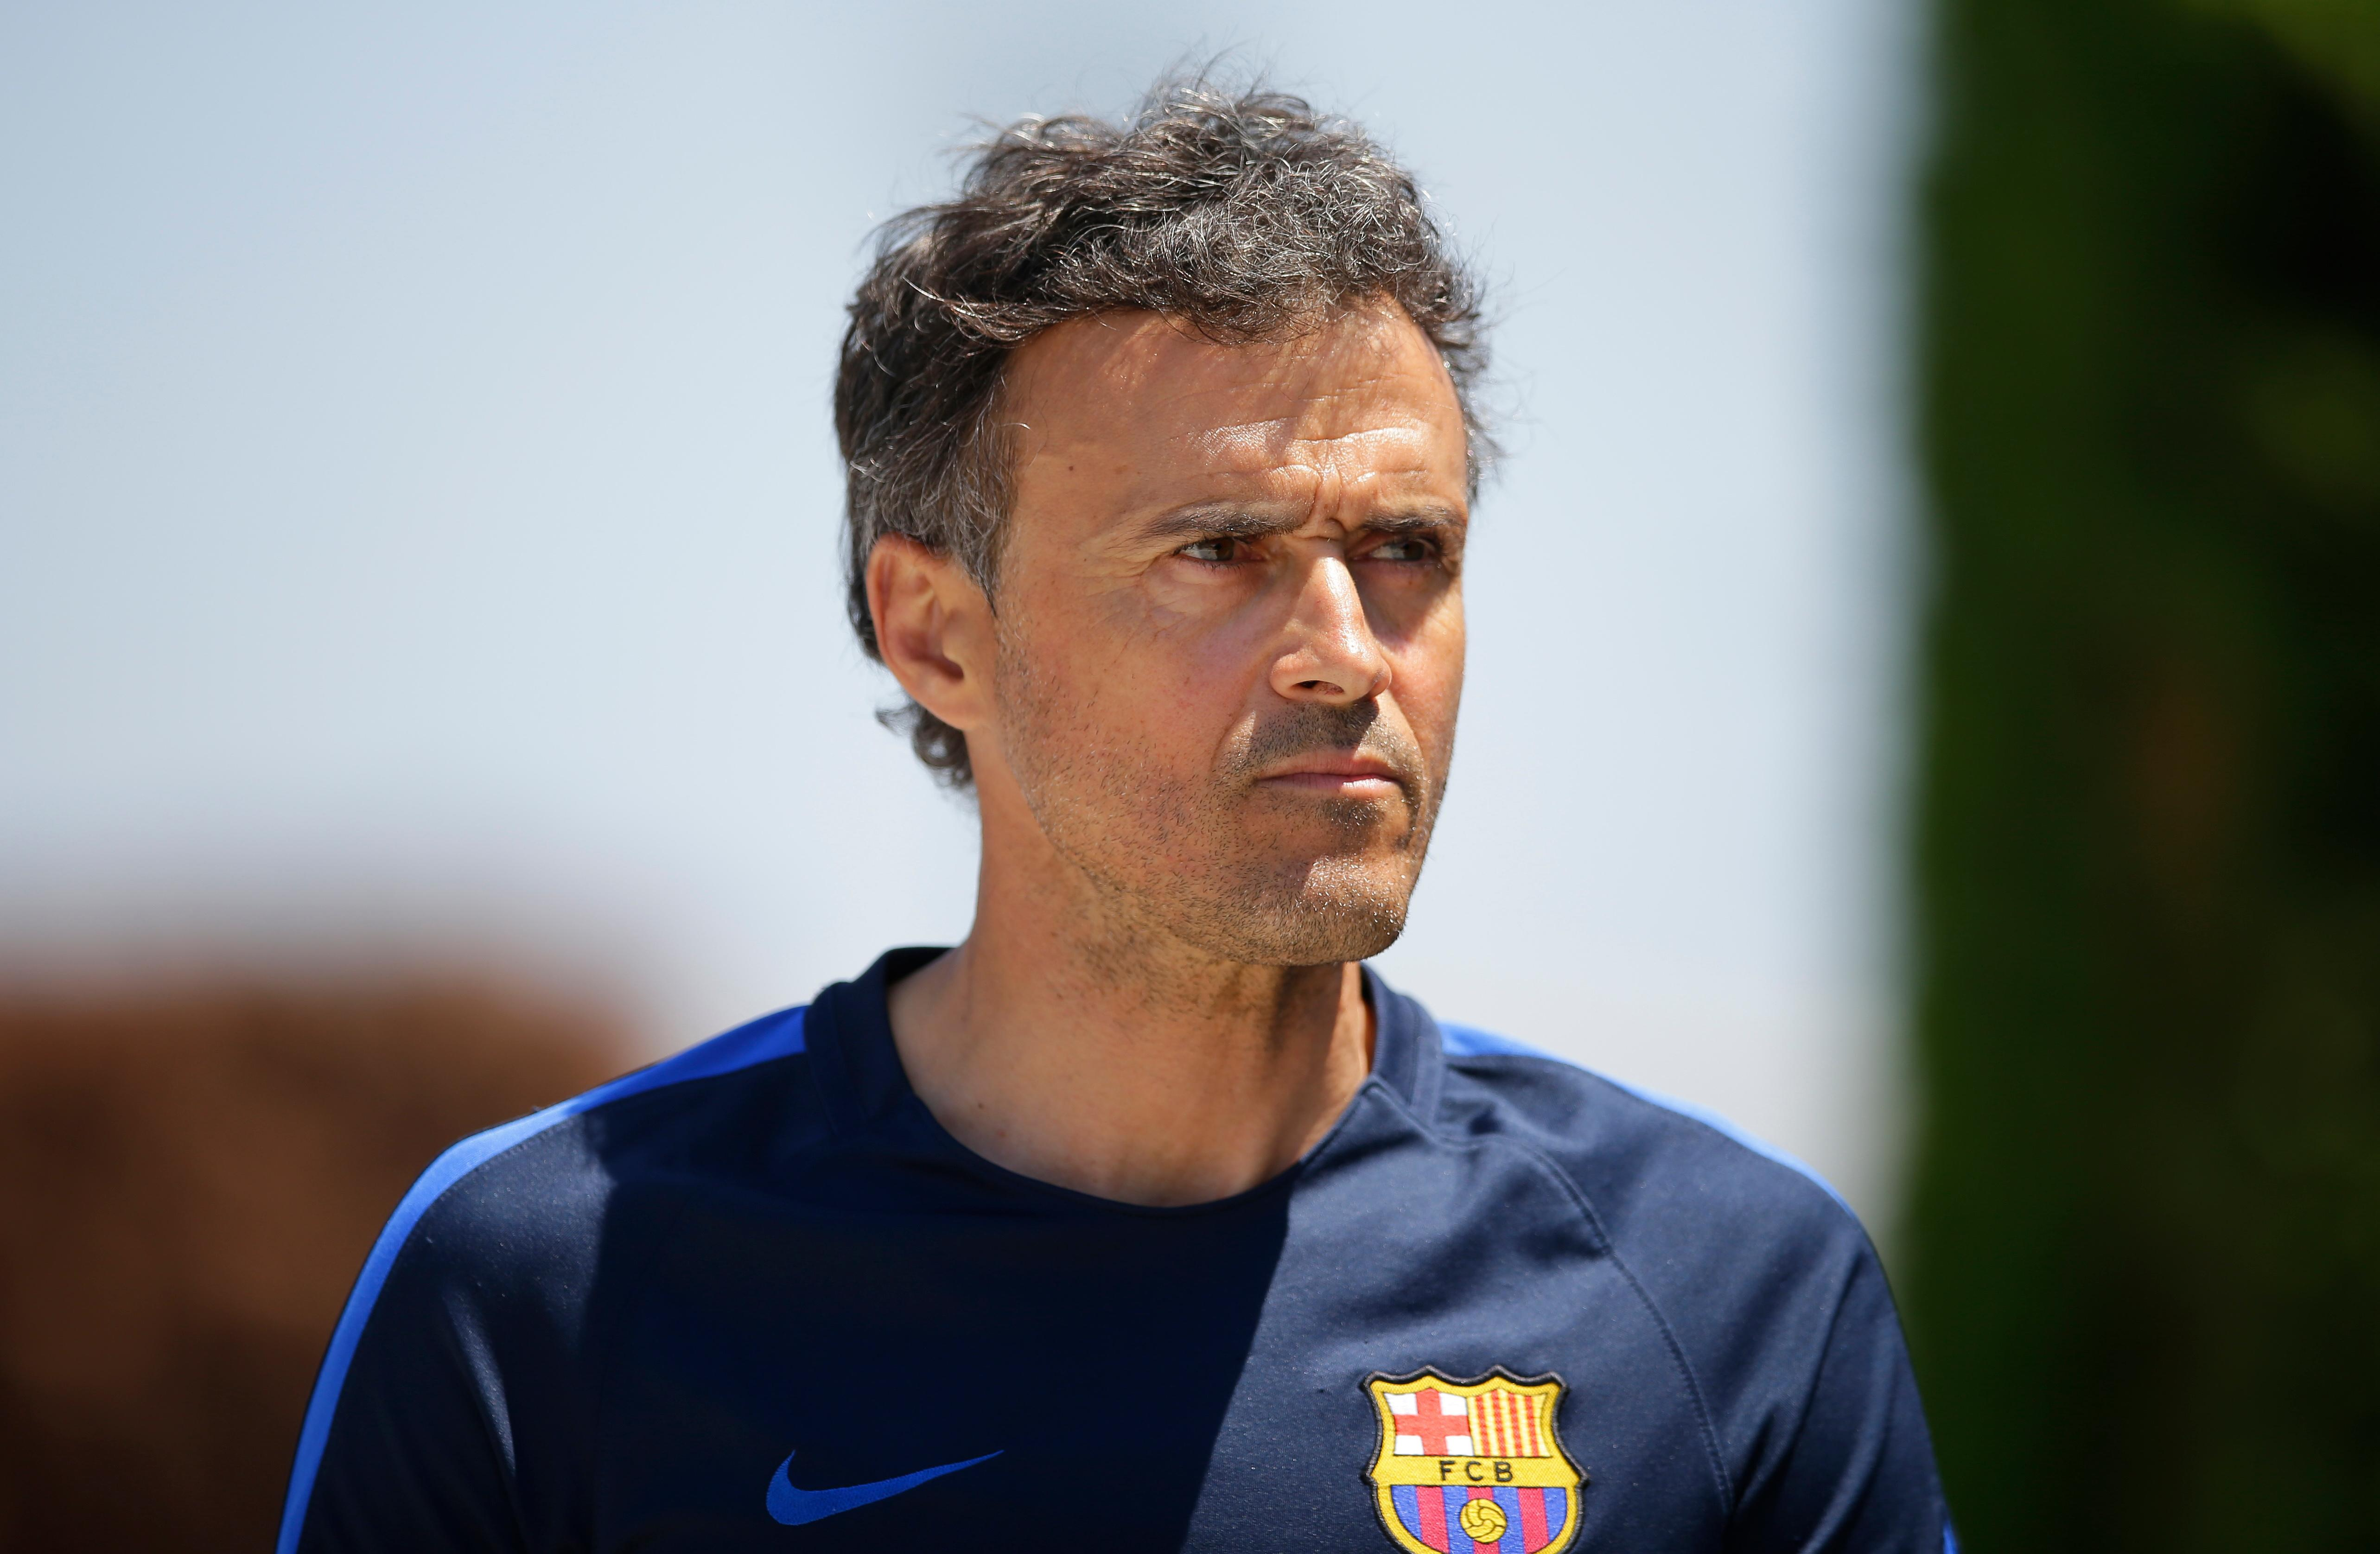 Arsenal have made contact with Luis Enrique about succeeding Arsene Wenger